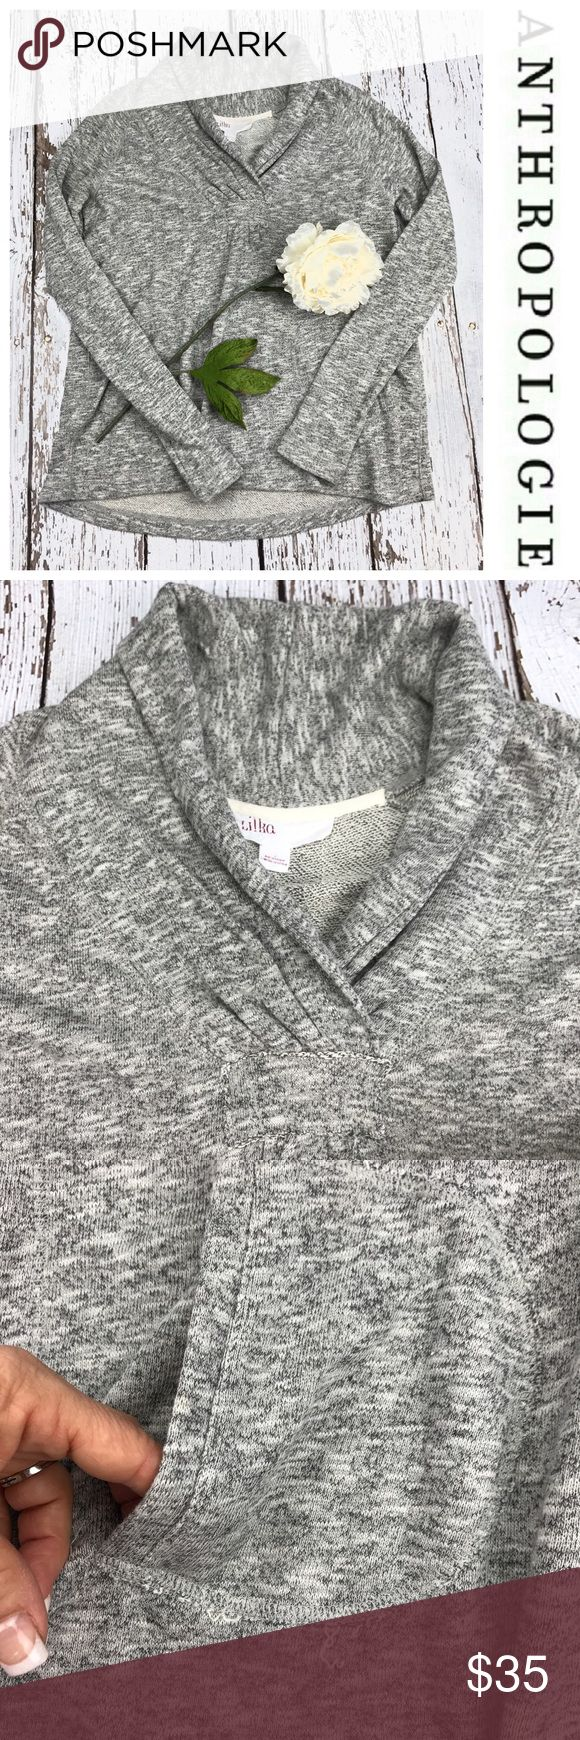 """💕SALE💕Anthropologie Gray Tweed Hi Low Sweatshirt 💕Anthropologie Gray Tweed Hi Liw Sweatshirt with Pockets and Collared 25"""" from the top of the shoulder to the bottom in front 28"""" from the top of the shoulder to the bottom in back 20"""" from armpit to armpit 28"""" Sleeve Length Anthropologie Sweaters"""